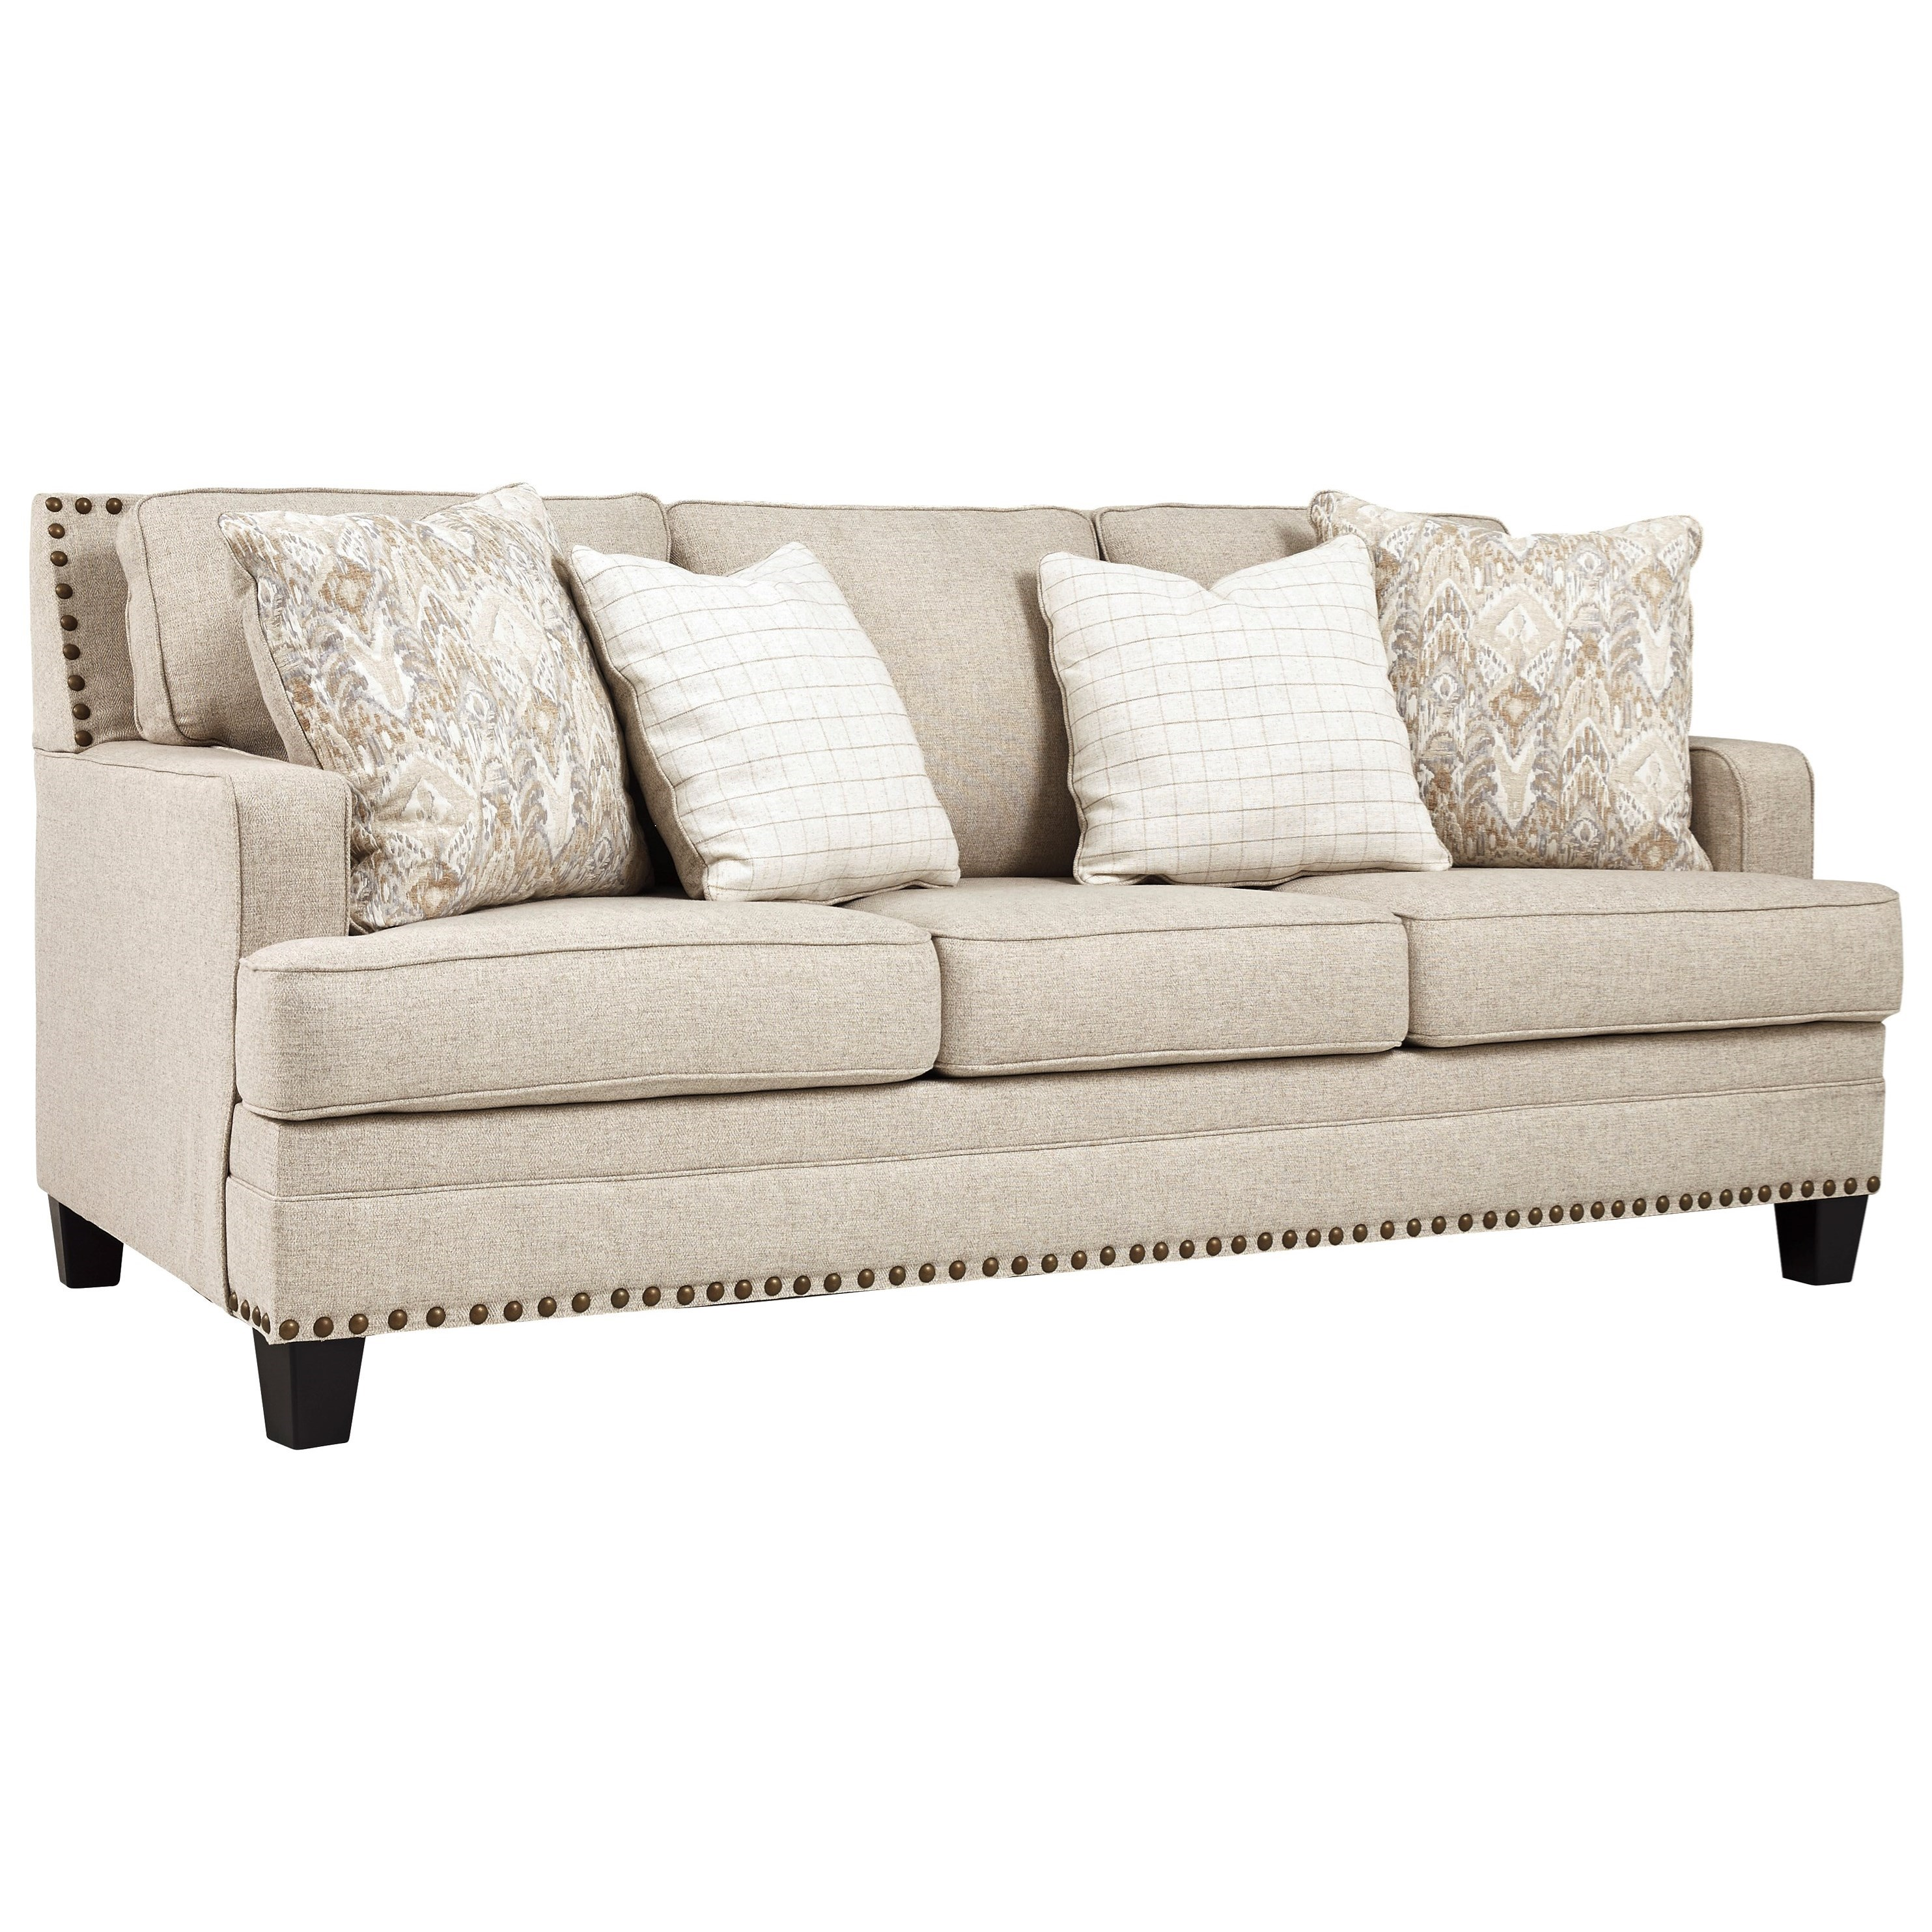 Signature Design By Ashley Claredon Transitional Sofa With Nailhead Trim Conlin S Furniture